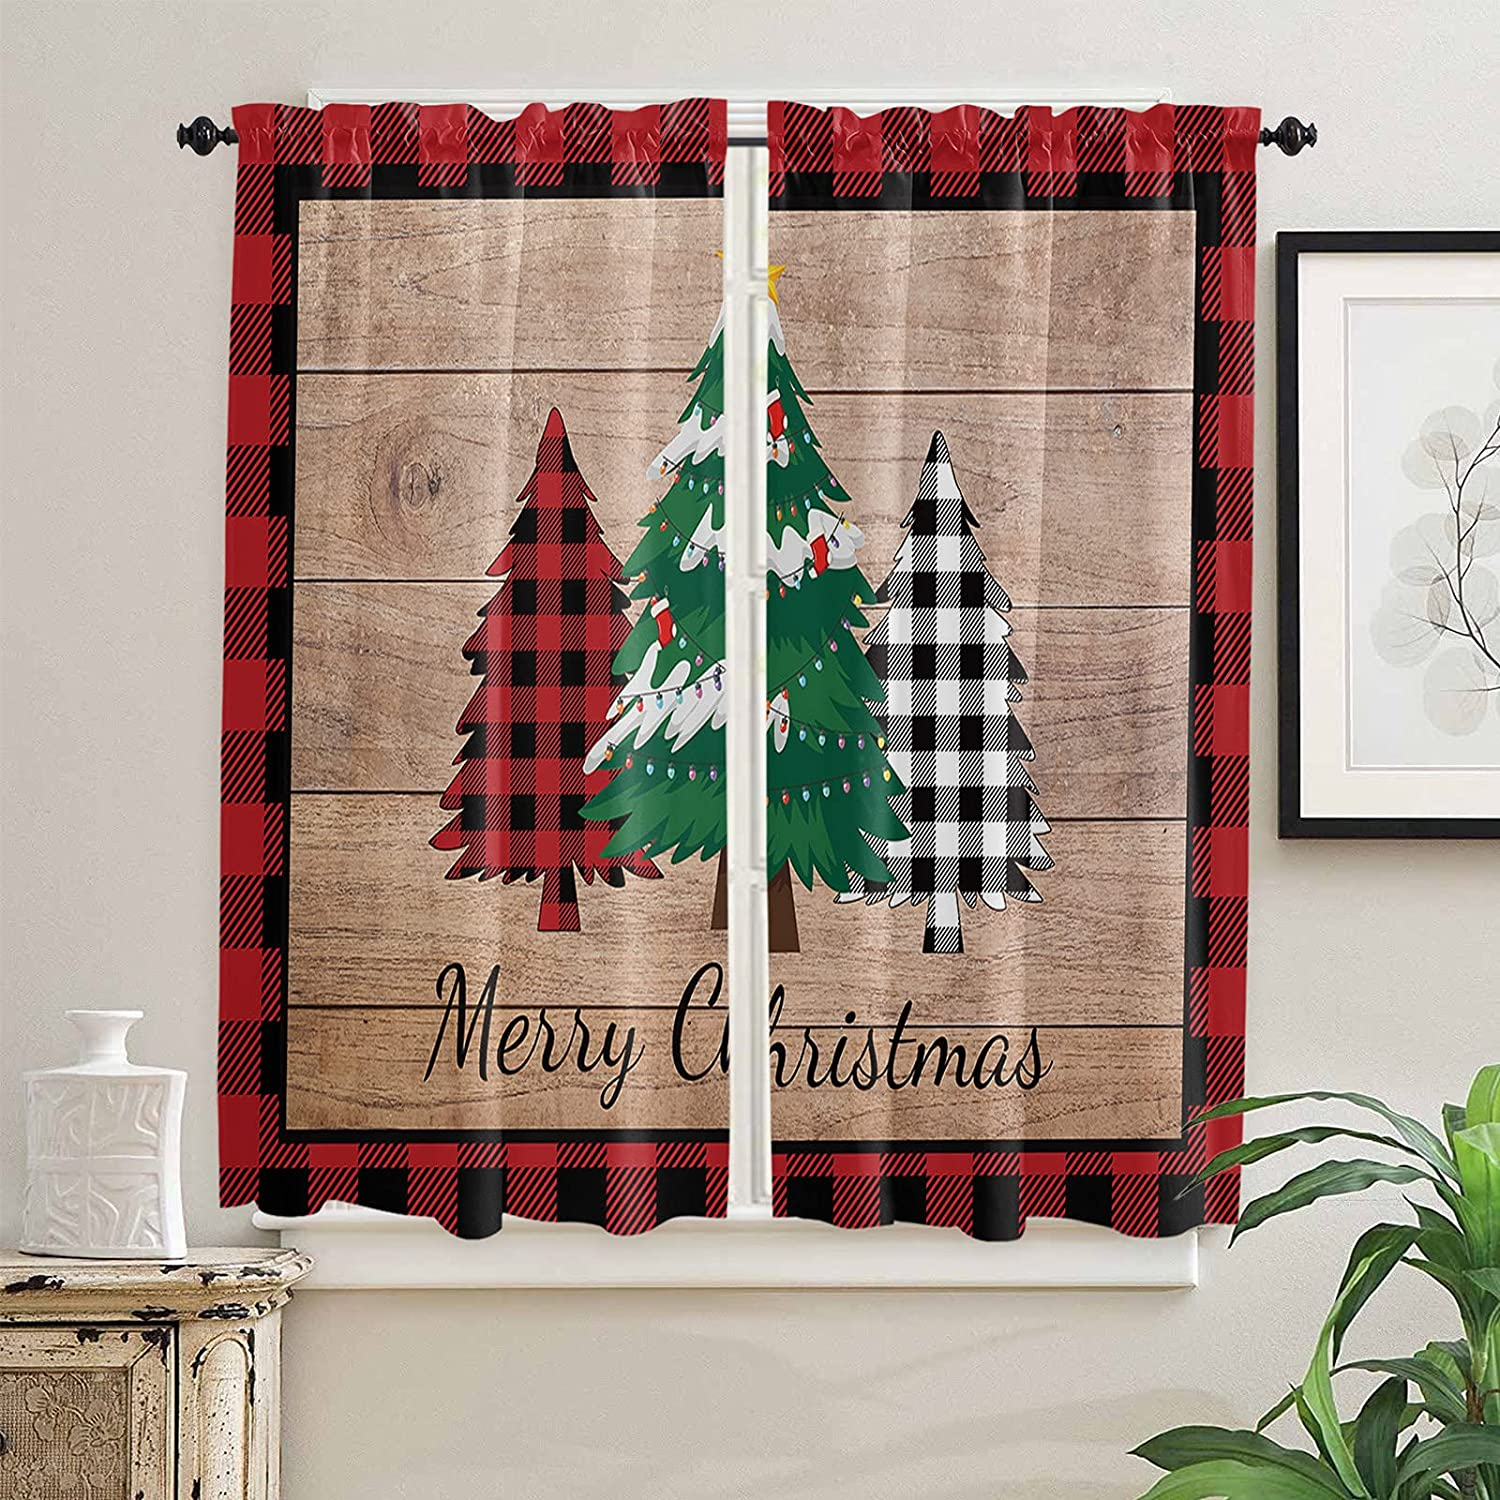 Christmas Kitchen Curtains 63 Length for Inch Outlet ☆ Free Memphis Mall Shipping Windows